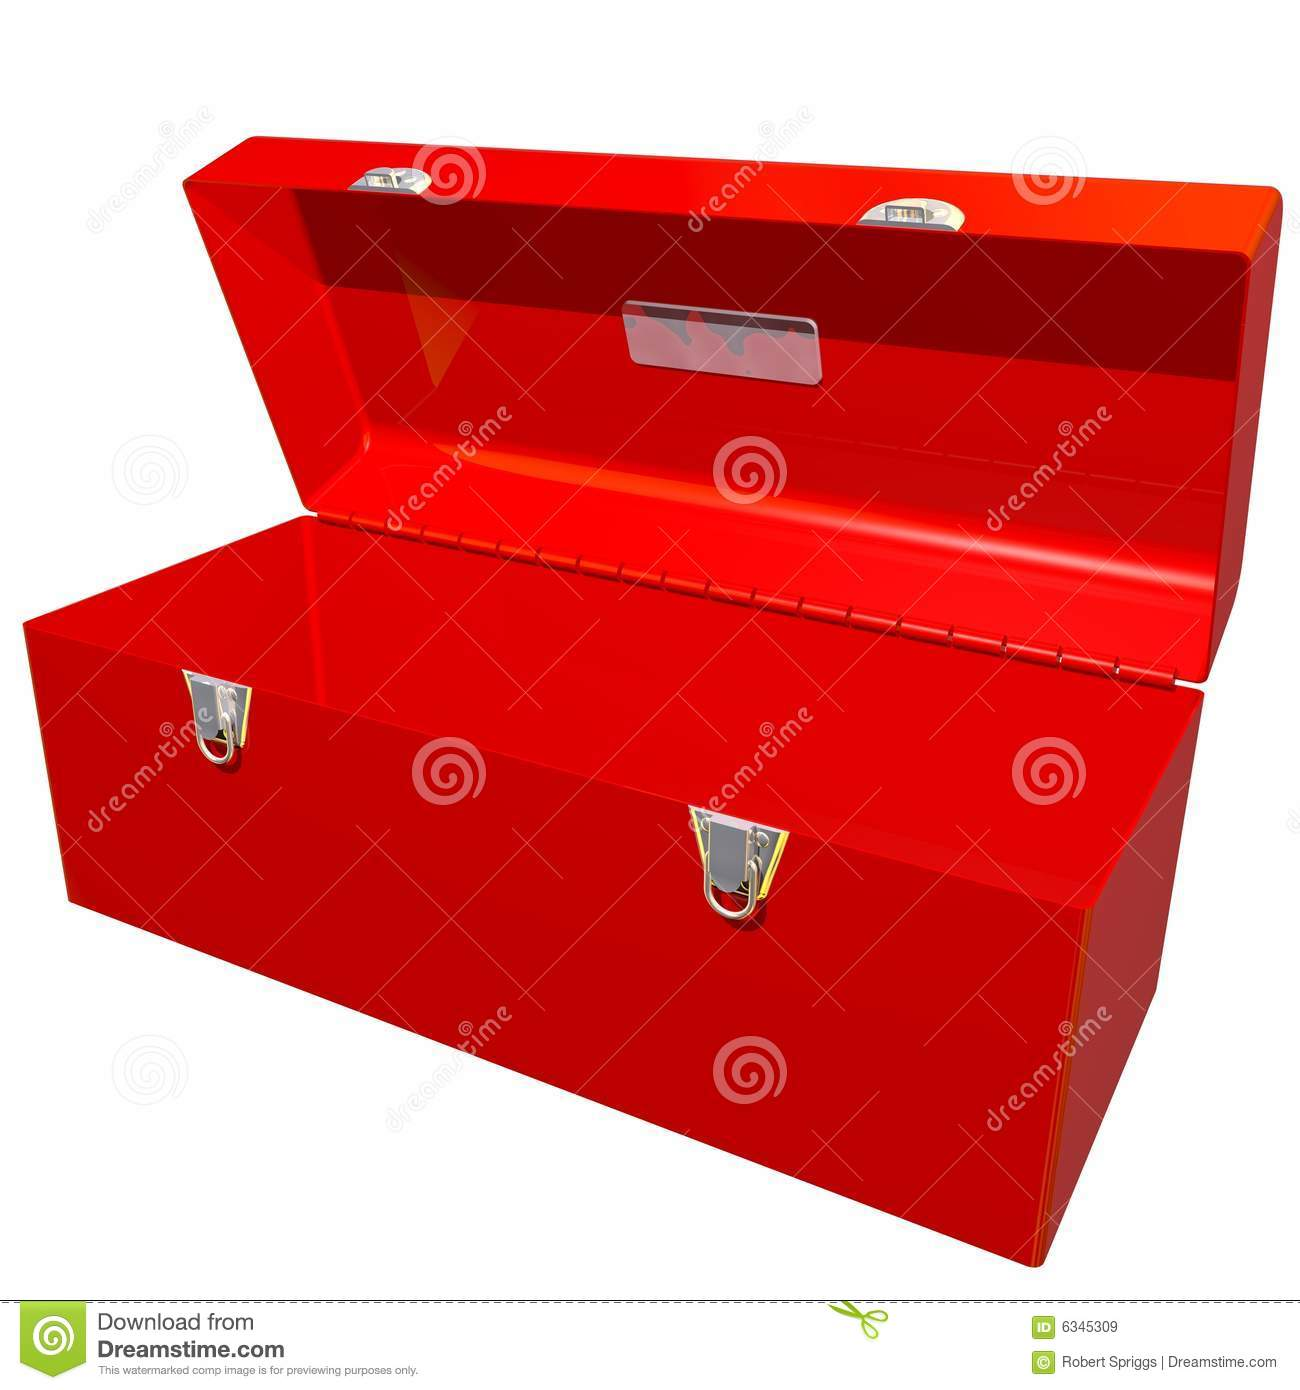 hight resolution of open toolbox stock illustrations 511 open toolbox stock illustrations vectors clipart dreamstime